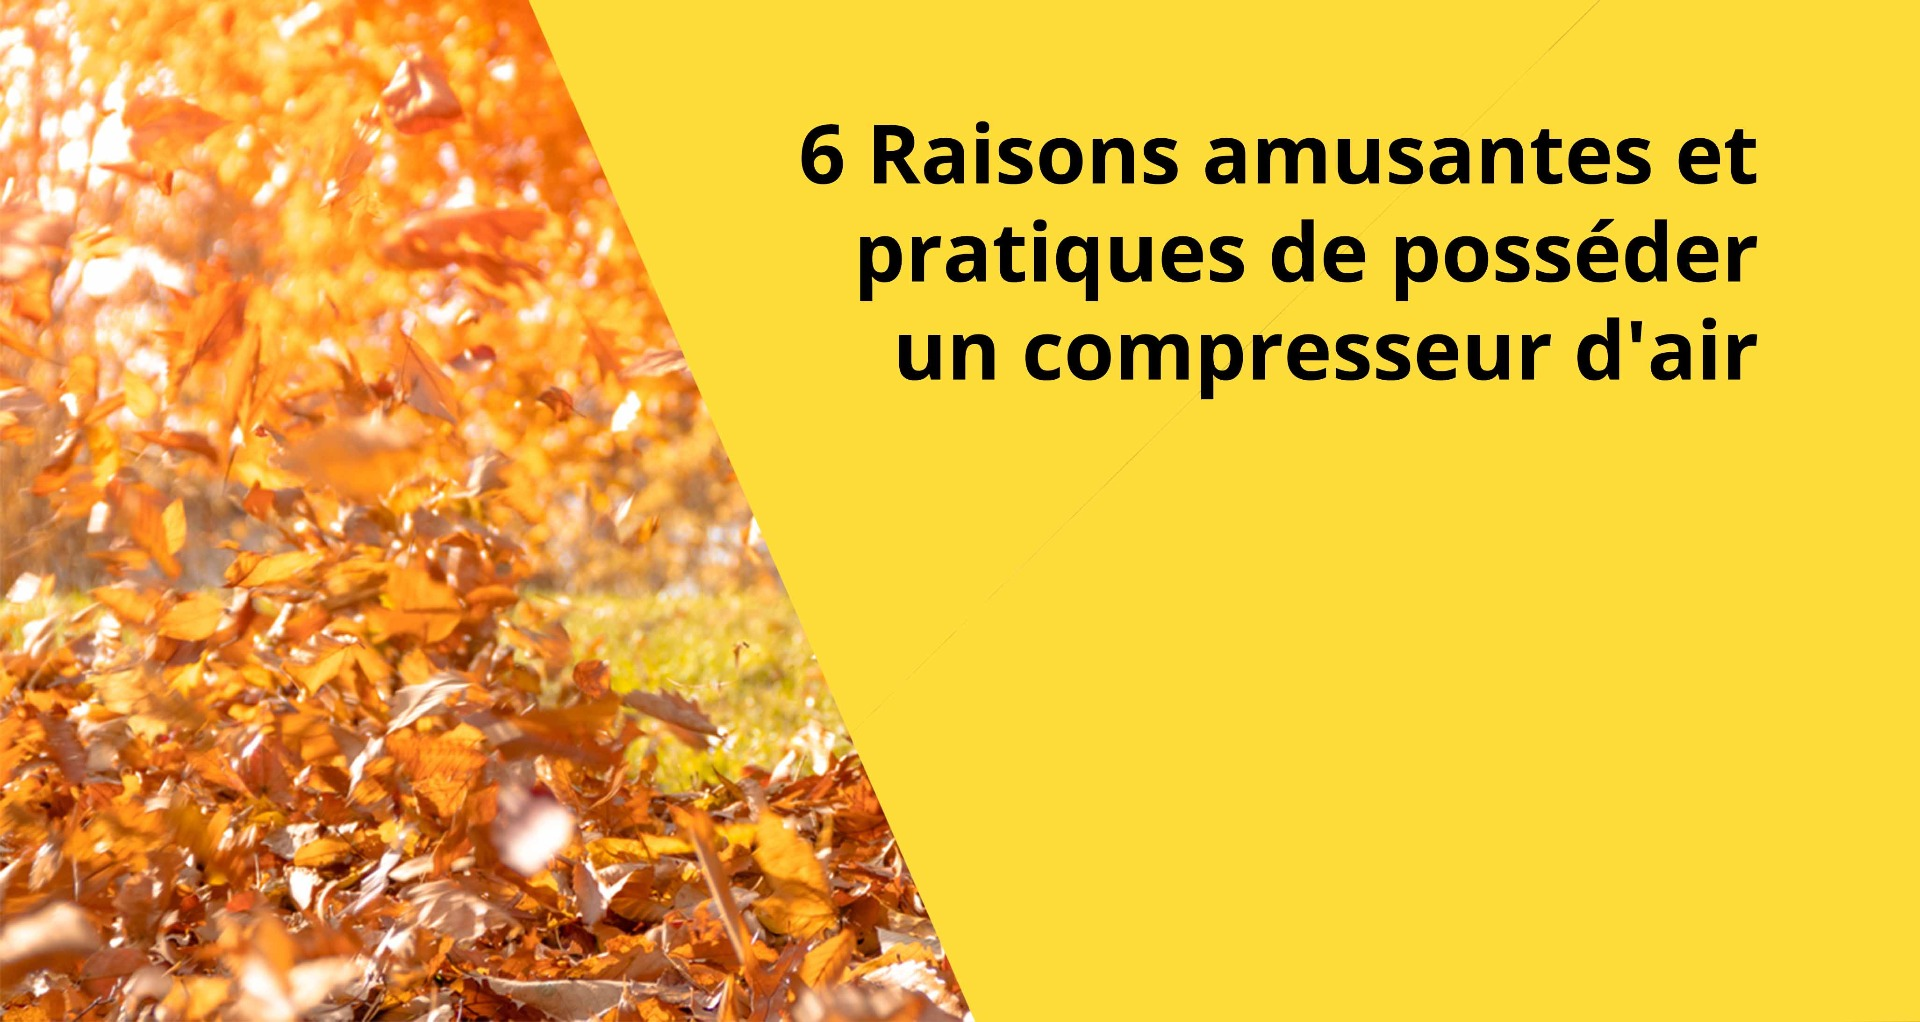 Raisons compresseur